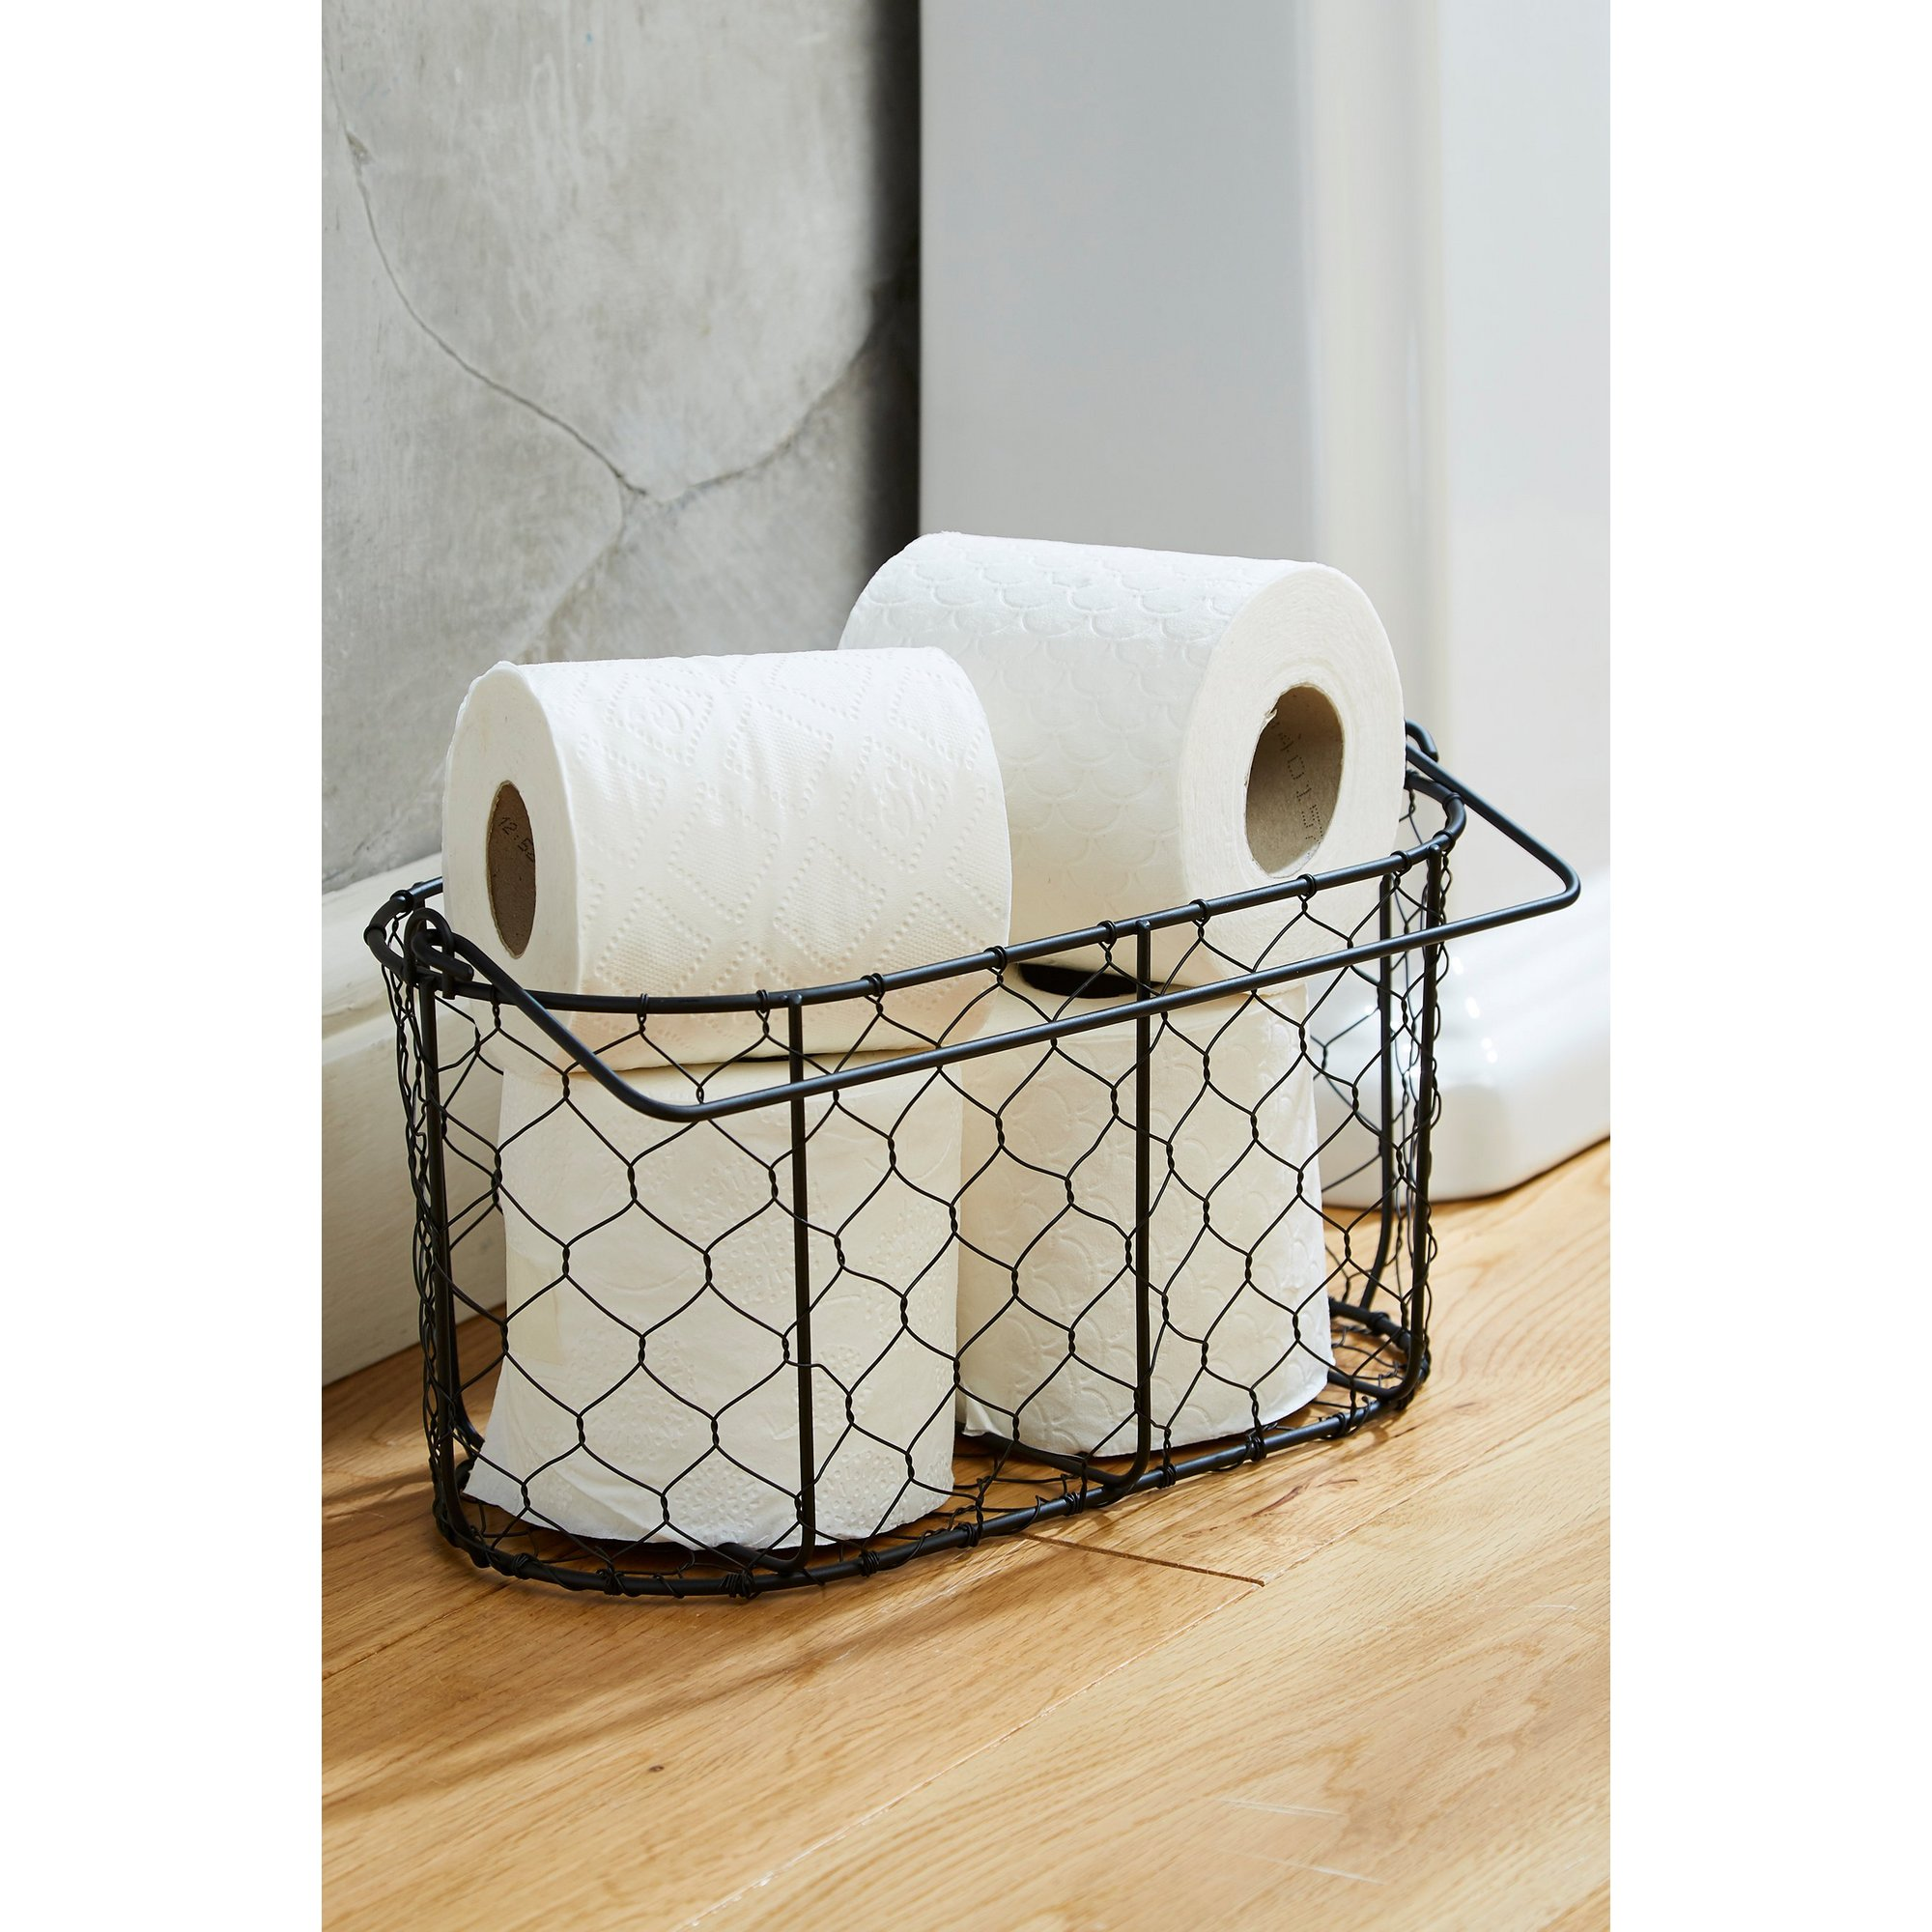 Image of Black Wire Toilet Roll Basket